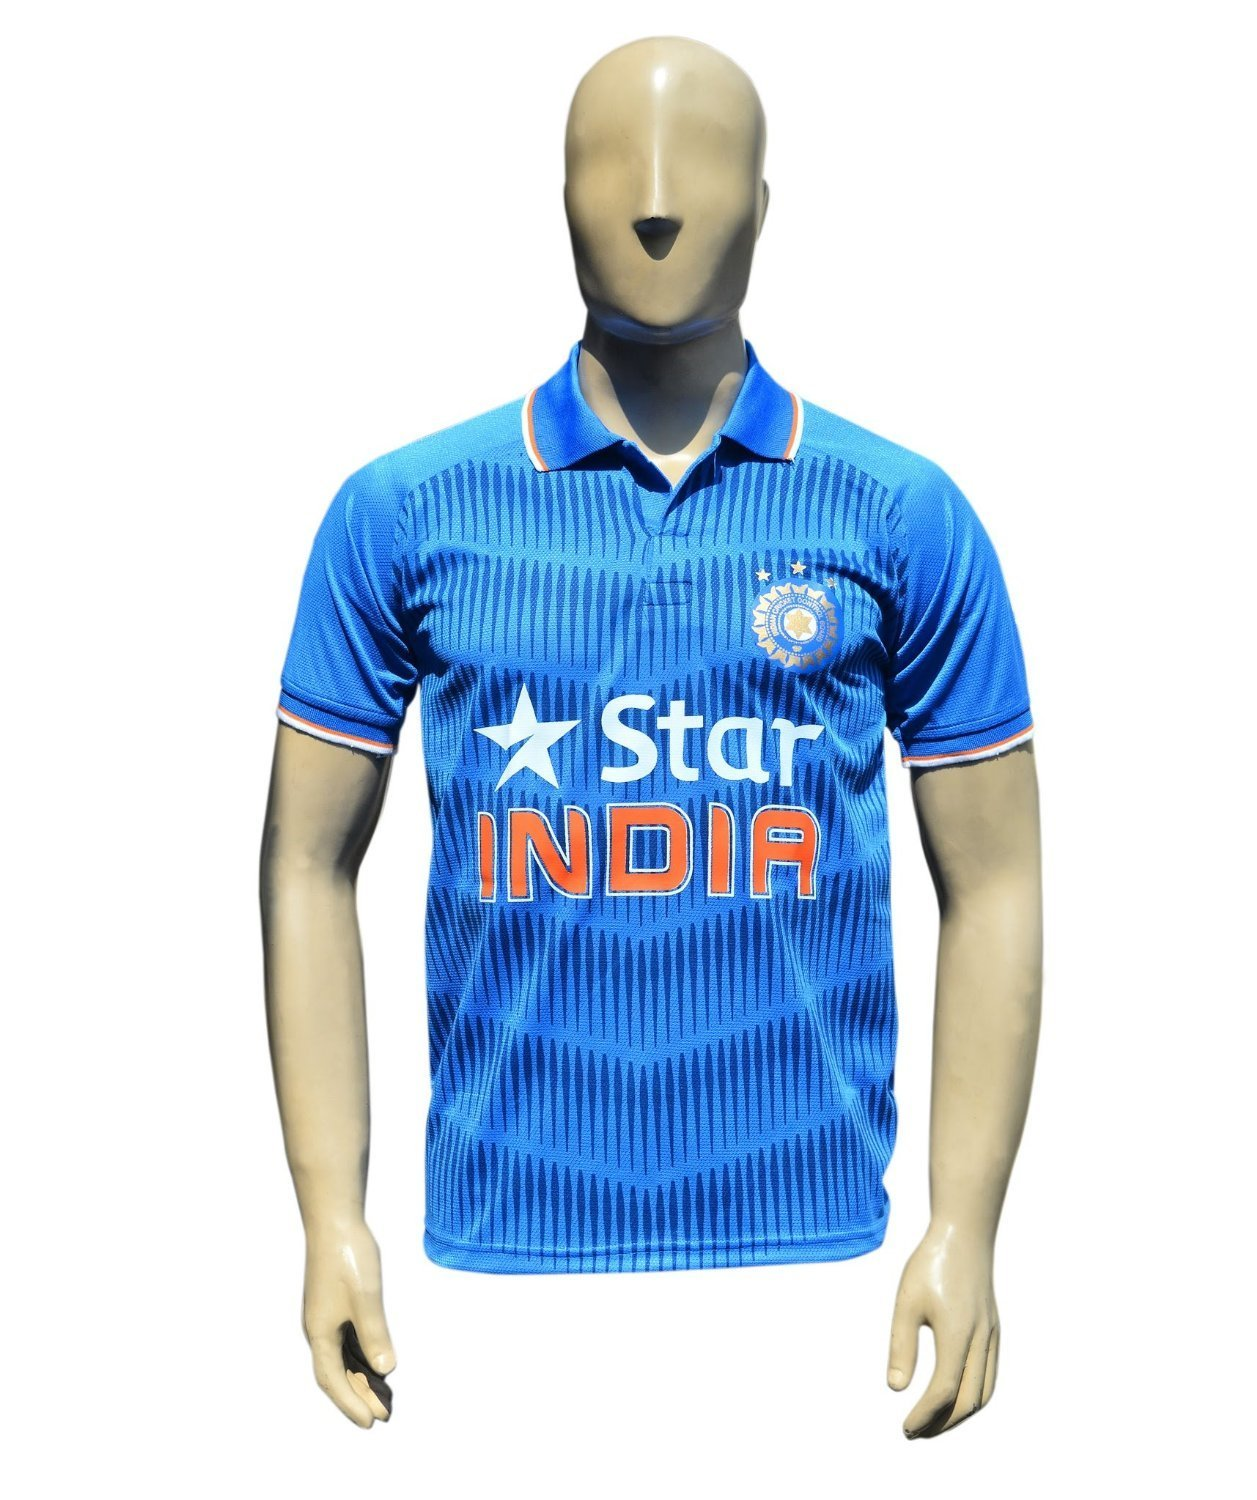 Nike mexico jersey 2017 one pen one page - Buy X3 Team India Odi Cricket Supporter Jersey 2015 Kids To Adult Sizes Online At Low Prices In India Amazon In